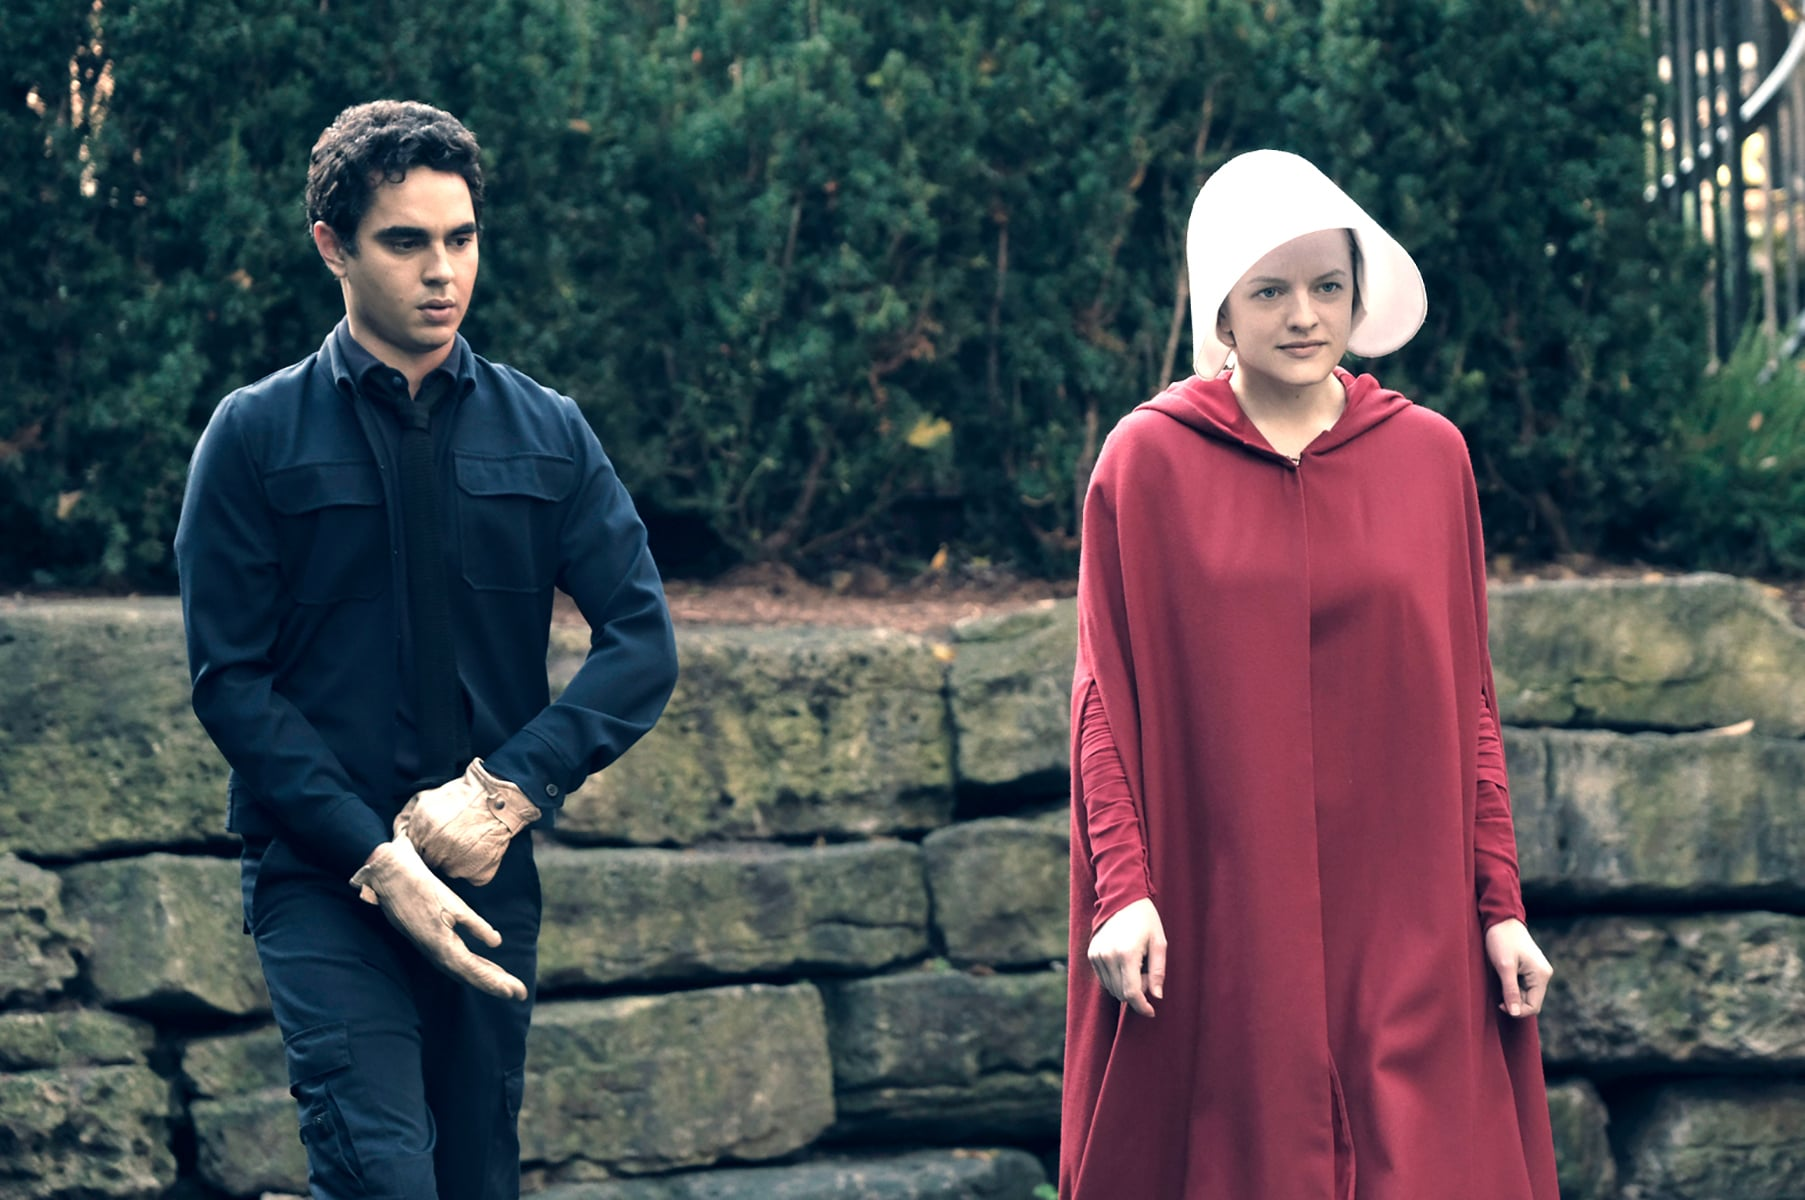 THE HANDMAID'S TALE, (from left): Max Minghella, Elisabeth Moss, 'Birth Day', (Season 1, ep. 102, aired April 26, 2017). photo: George Kraychyk / Hulu / Courtesy: Everett Collection